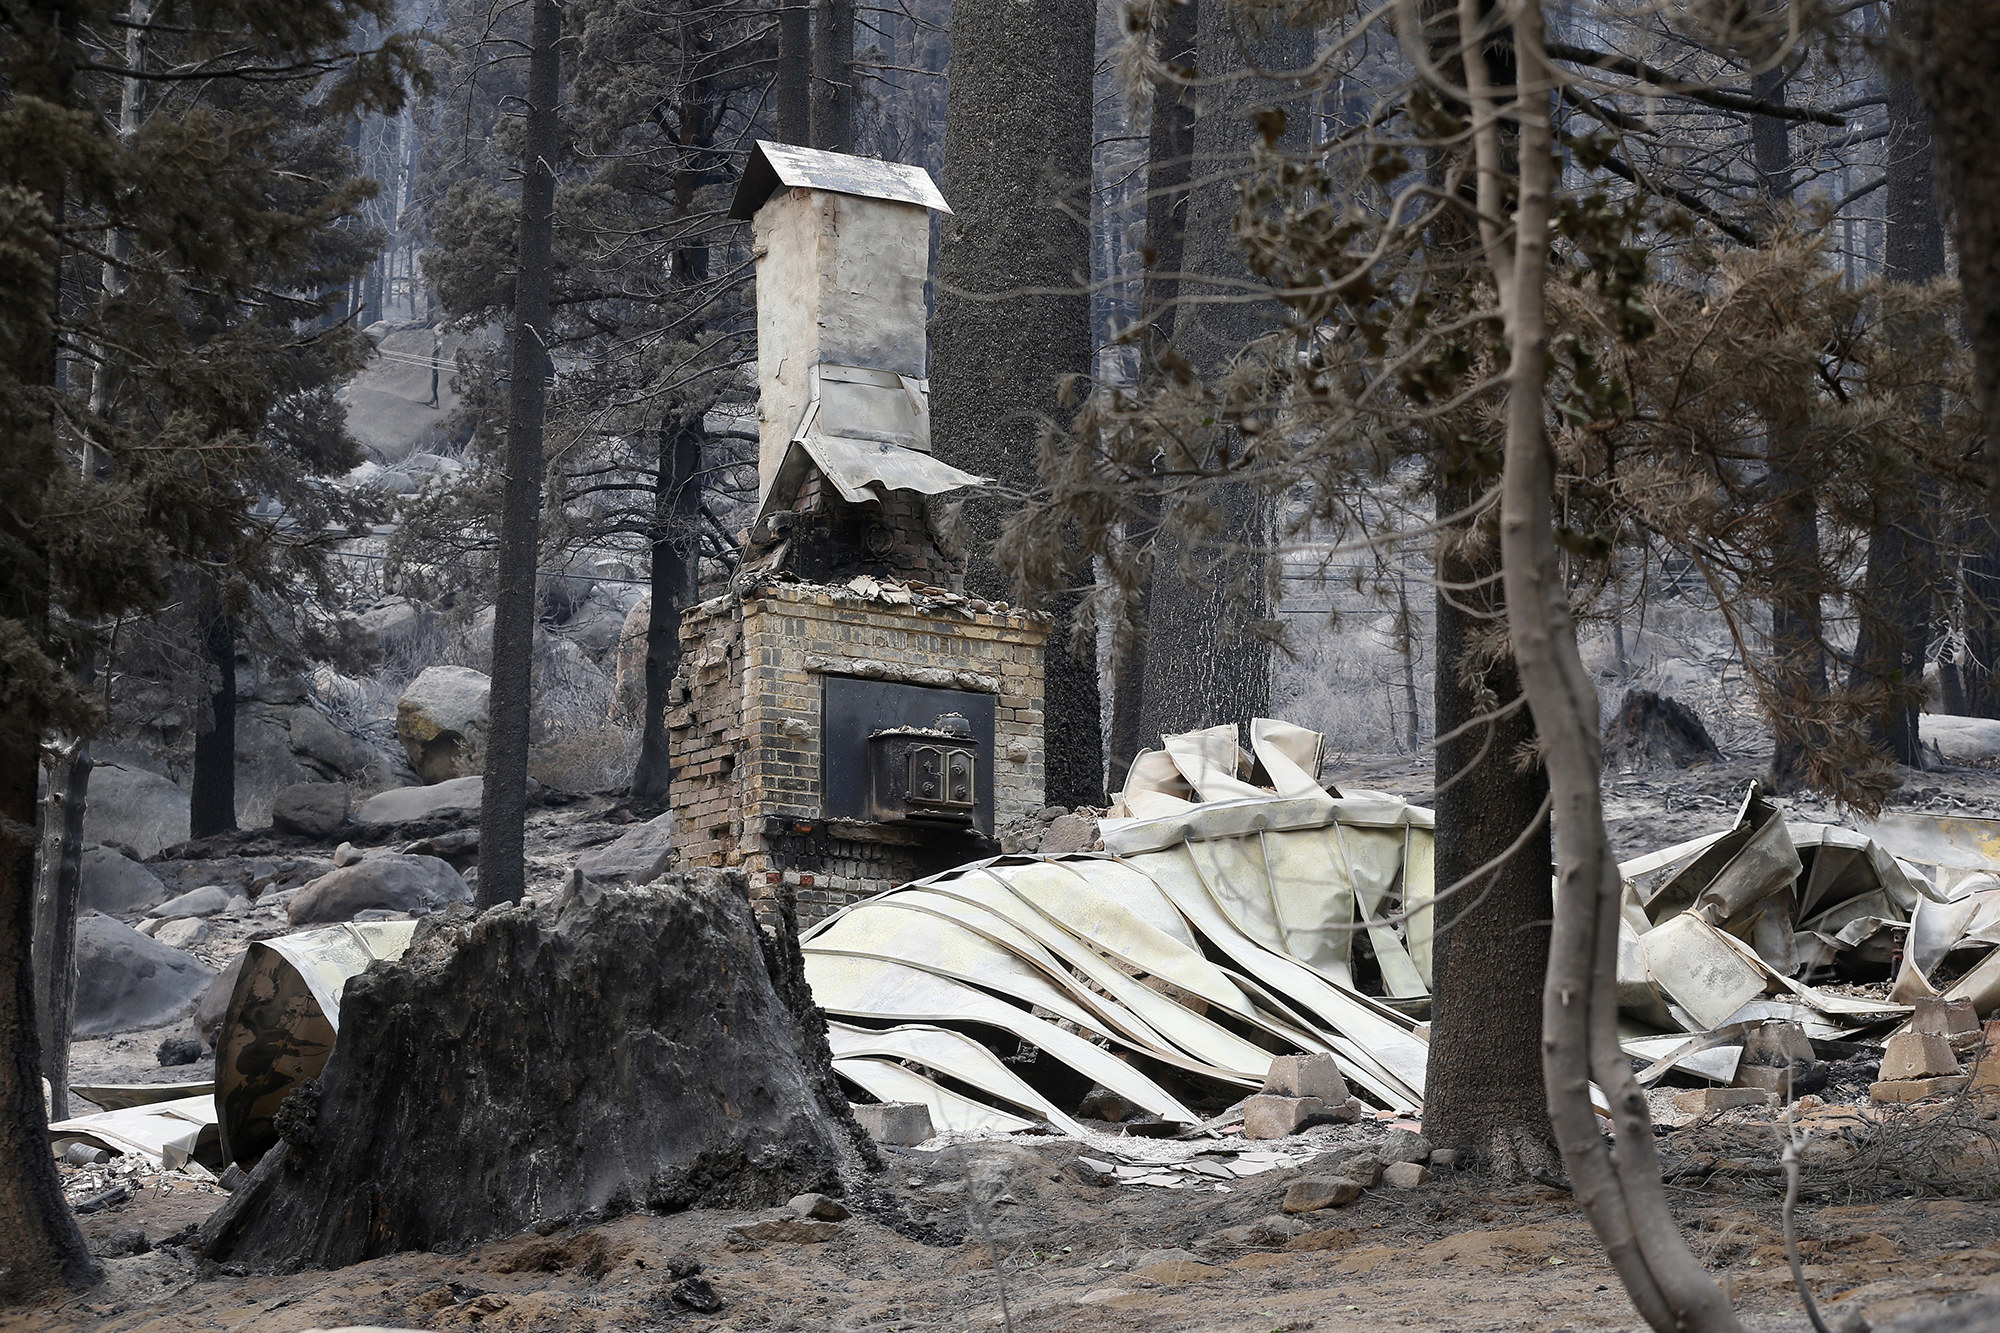 A collapsed roof in a forest sits next to a brick fireplace and chimney that are still standing